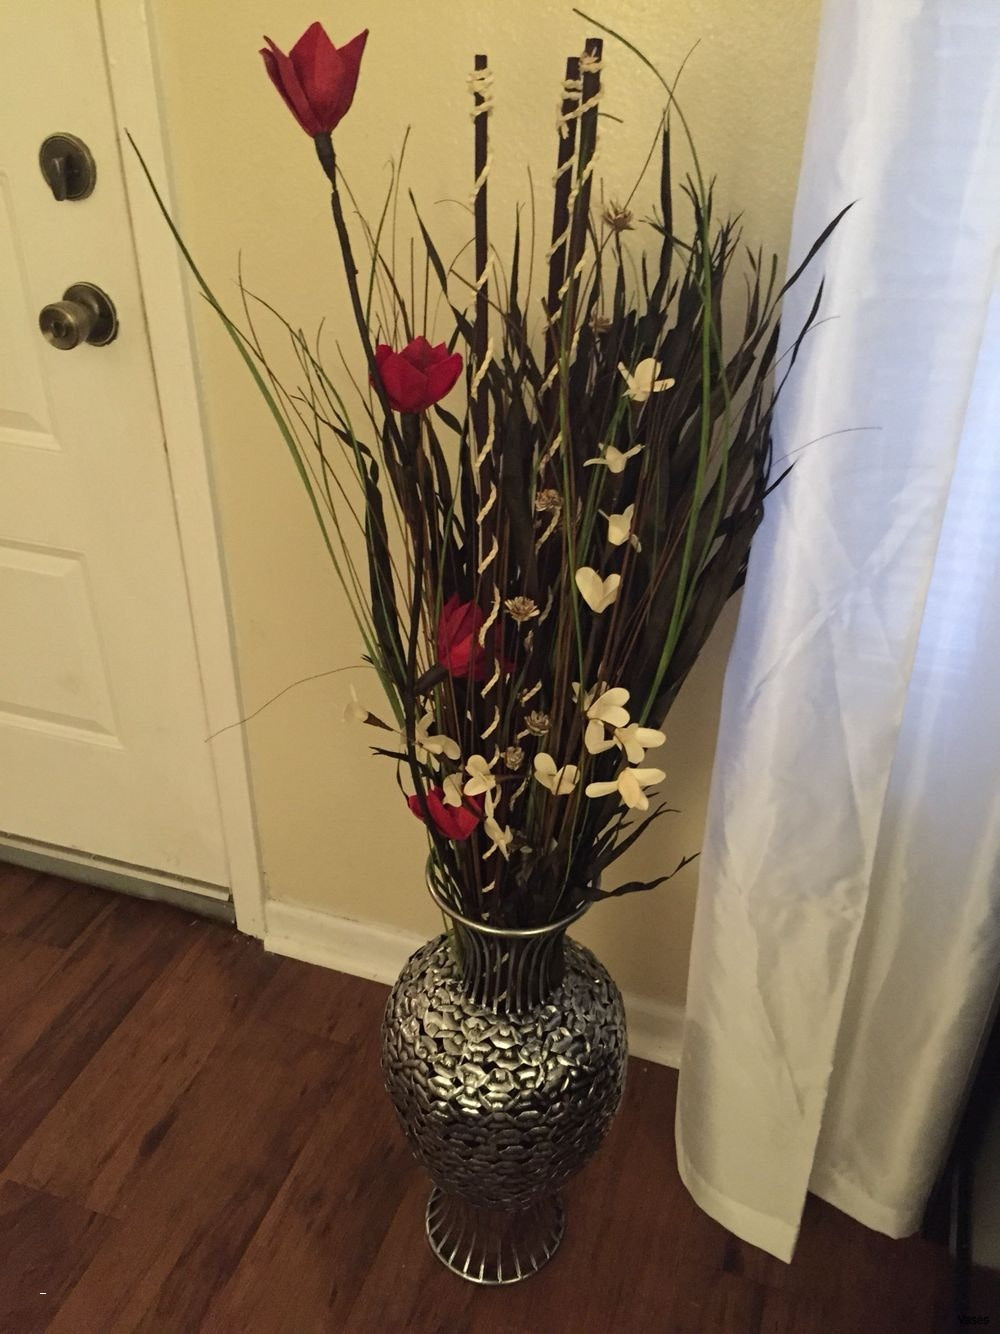 floor vase flower arrangements of stick lights new vases vase with sticks red in a i 0d 3d model and throughout stick lights new vases vase with sticks red in a i 0d 3d model and lights ice